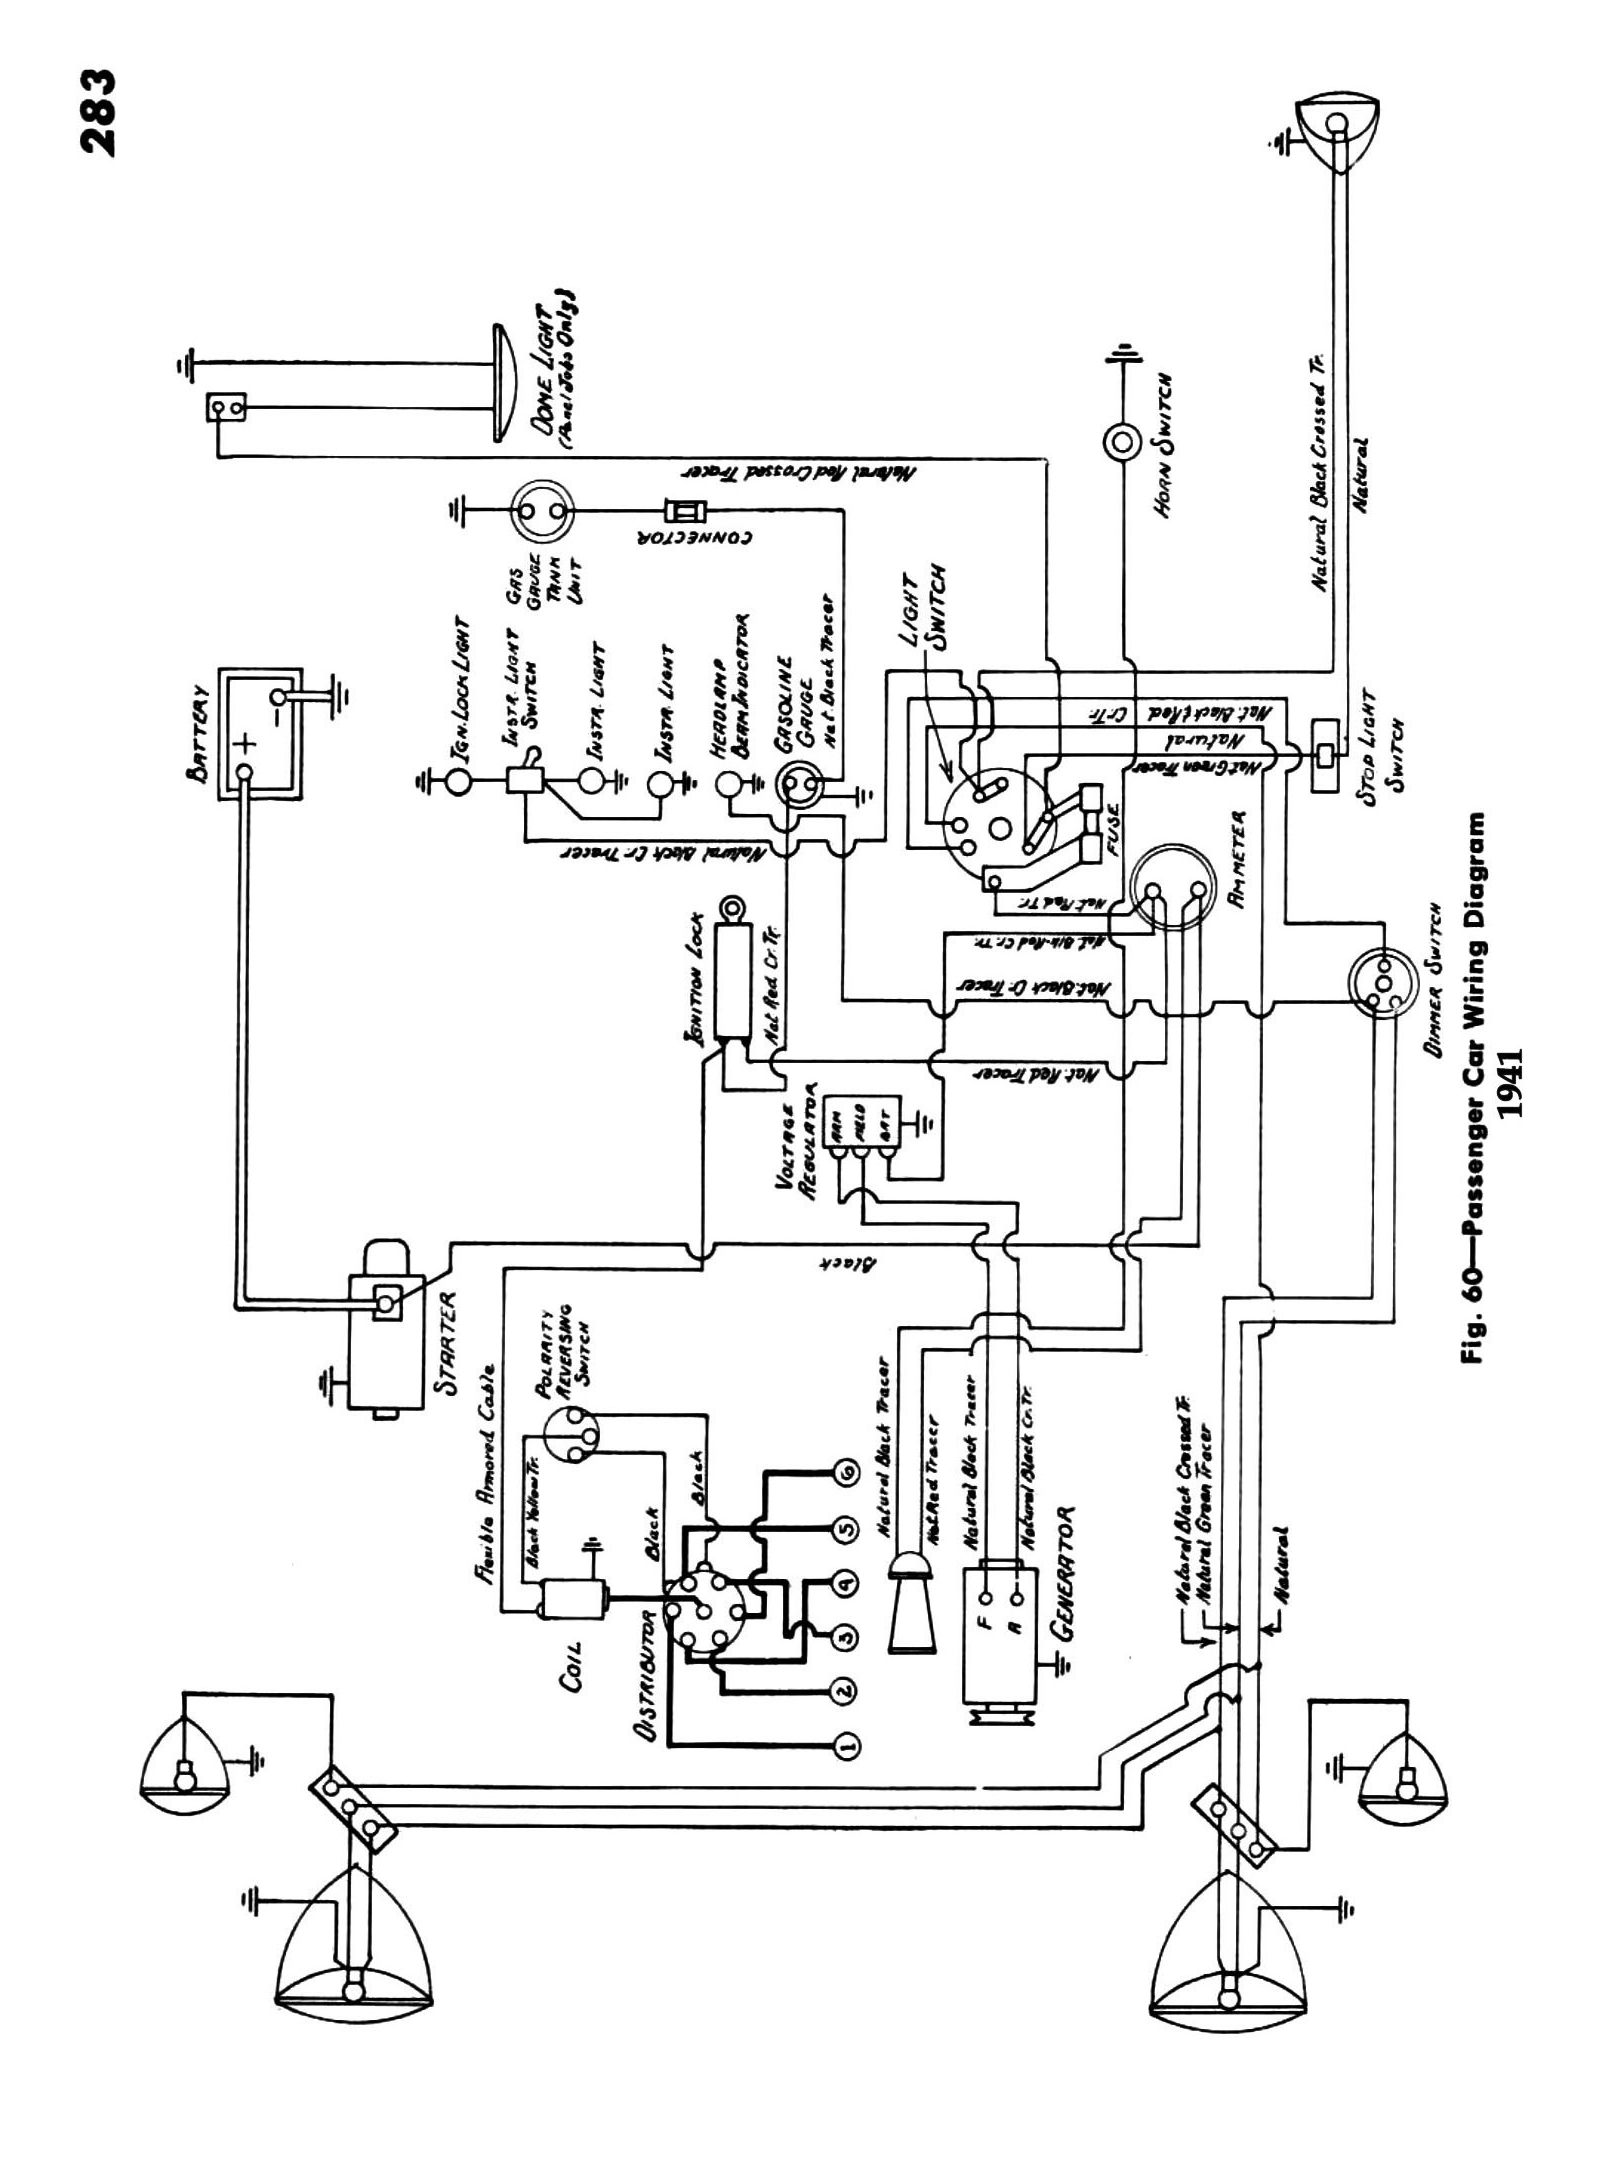 1978 International 1700 Loadstar Wiring Diagram Harvester Bus Chassis